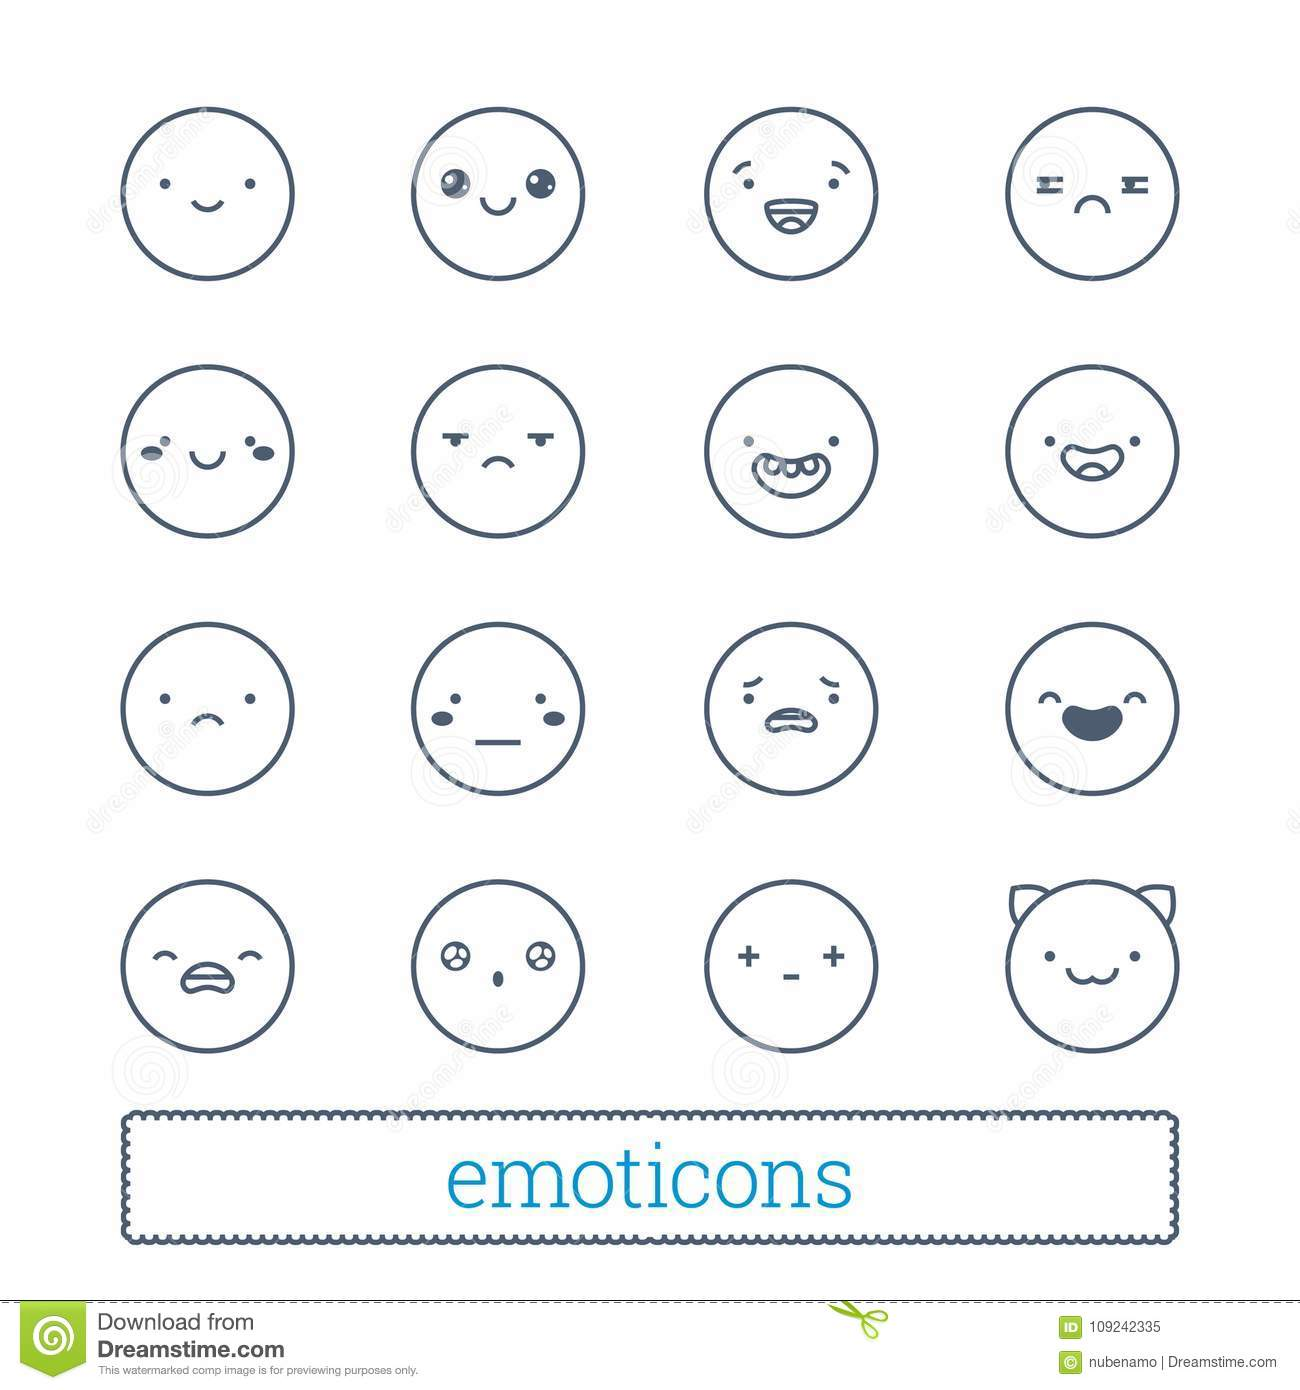 Cute emoticons thin line icons set linear style smiley symbols linear style smiley symbols simple people face expressions for social network chat biocorpaavc Images